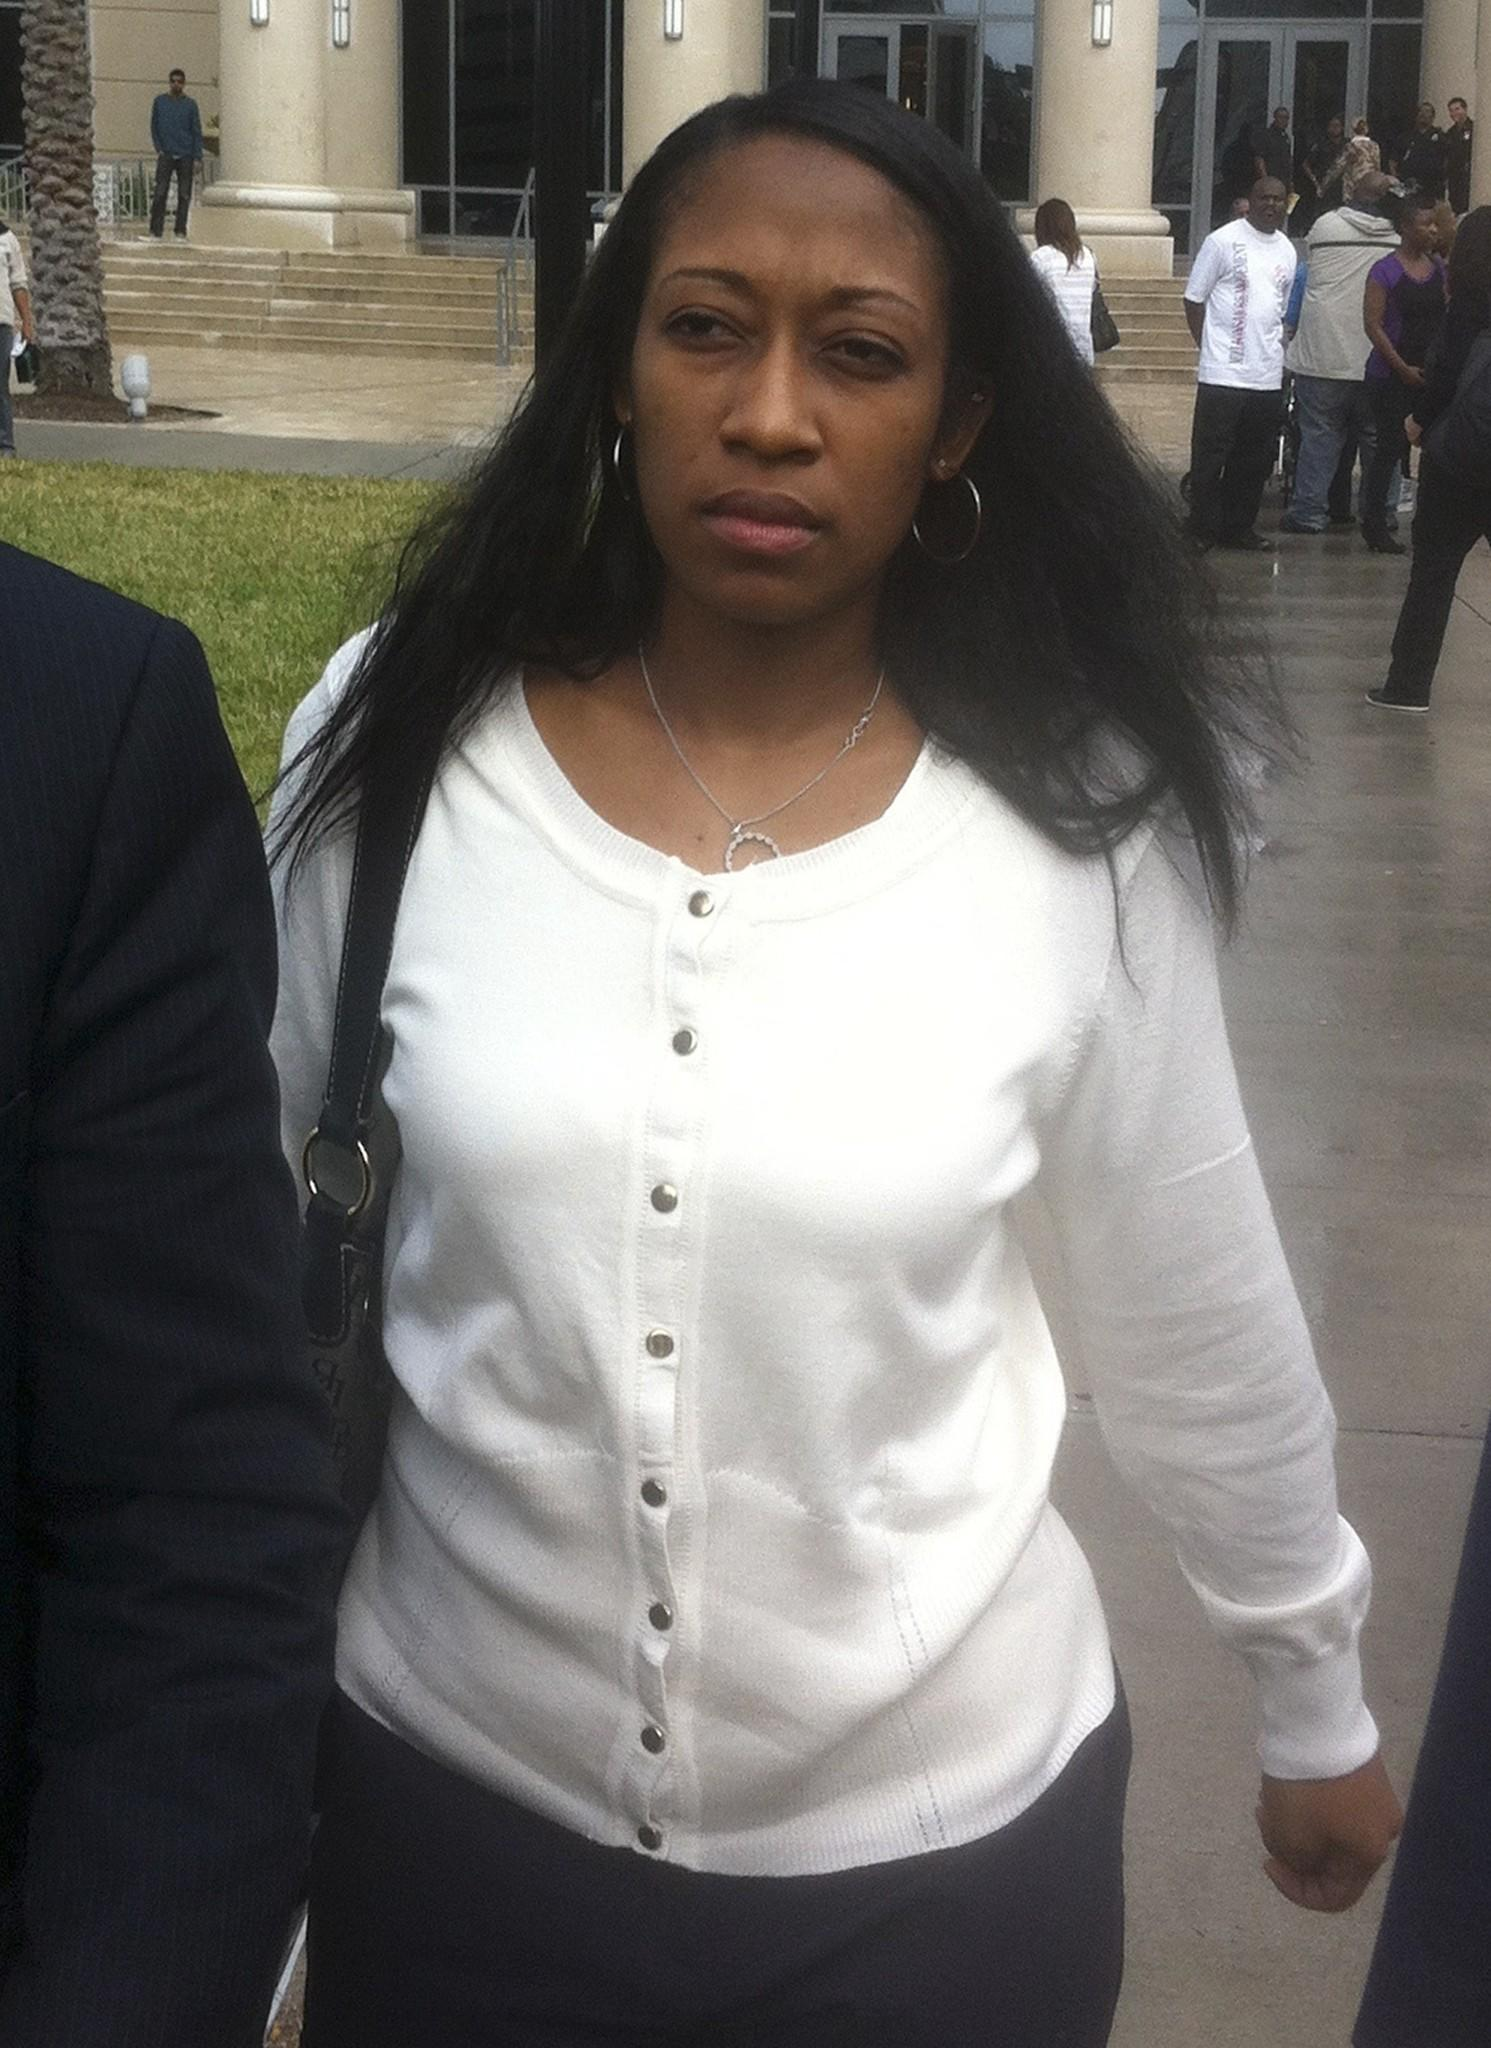 Marissa Alexander, 33, leaves after a court appearance in Jacksonville, Florida on Jan. 10.